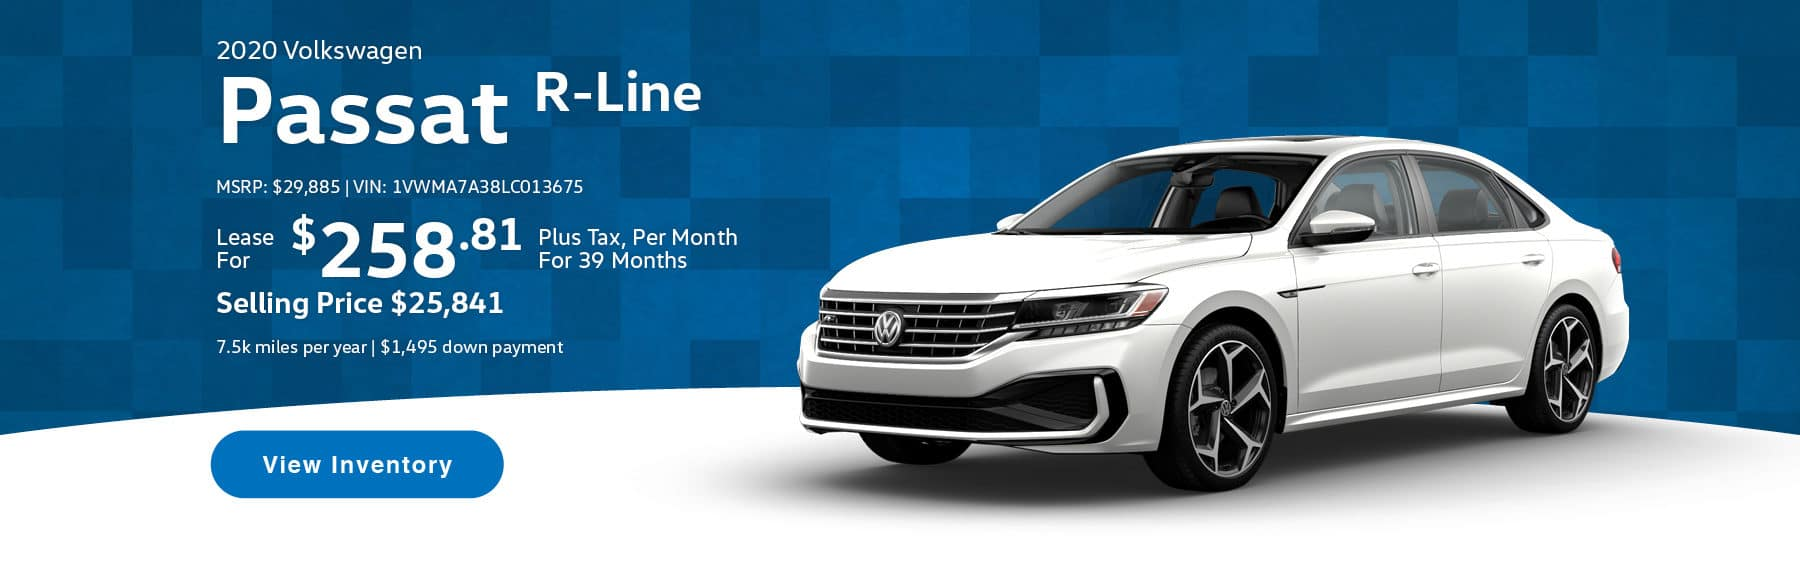 Lease the 2020 Passat R-Line for $258.81 per month, plus tax for 39 months.